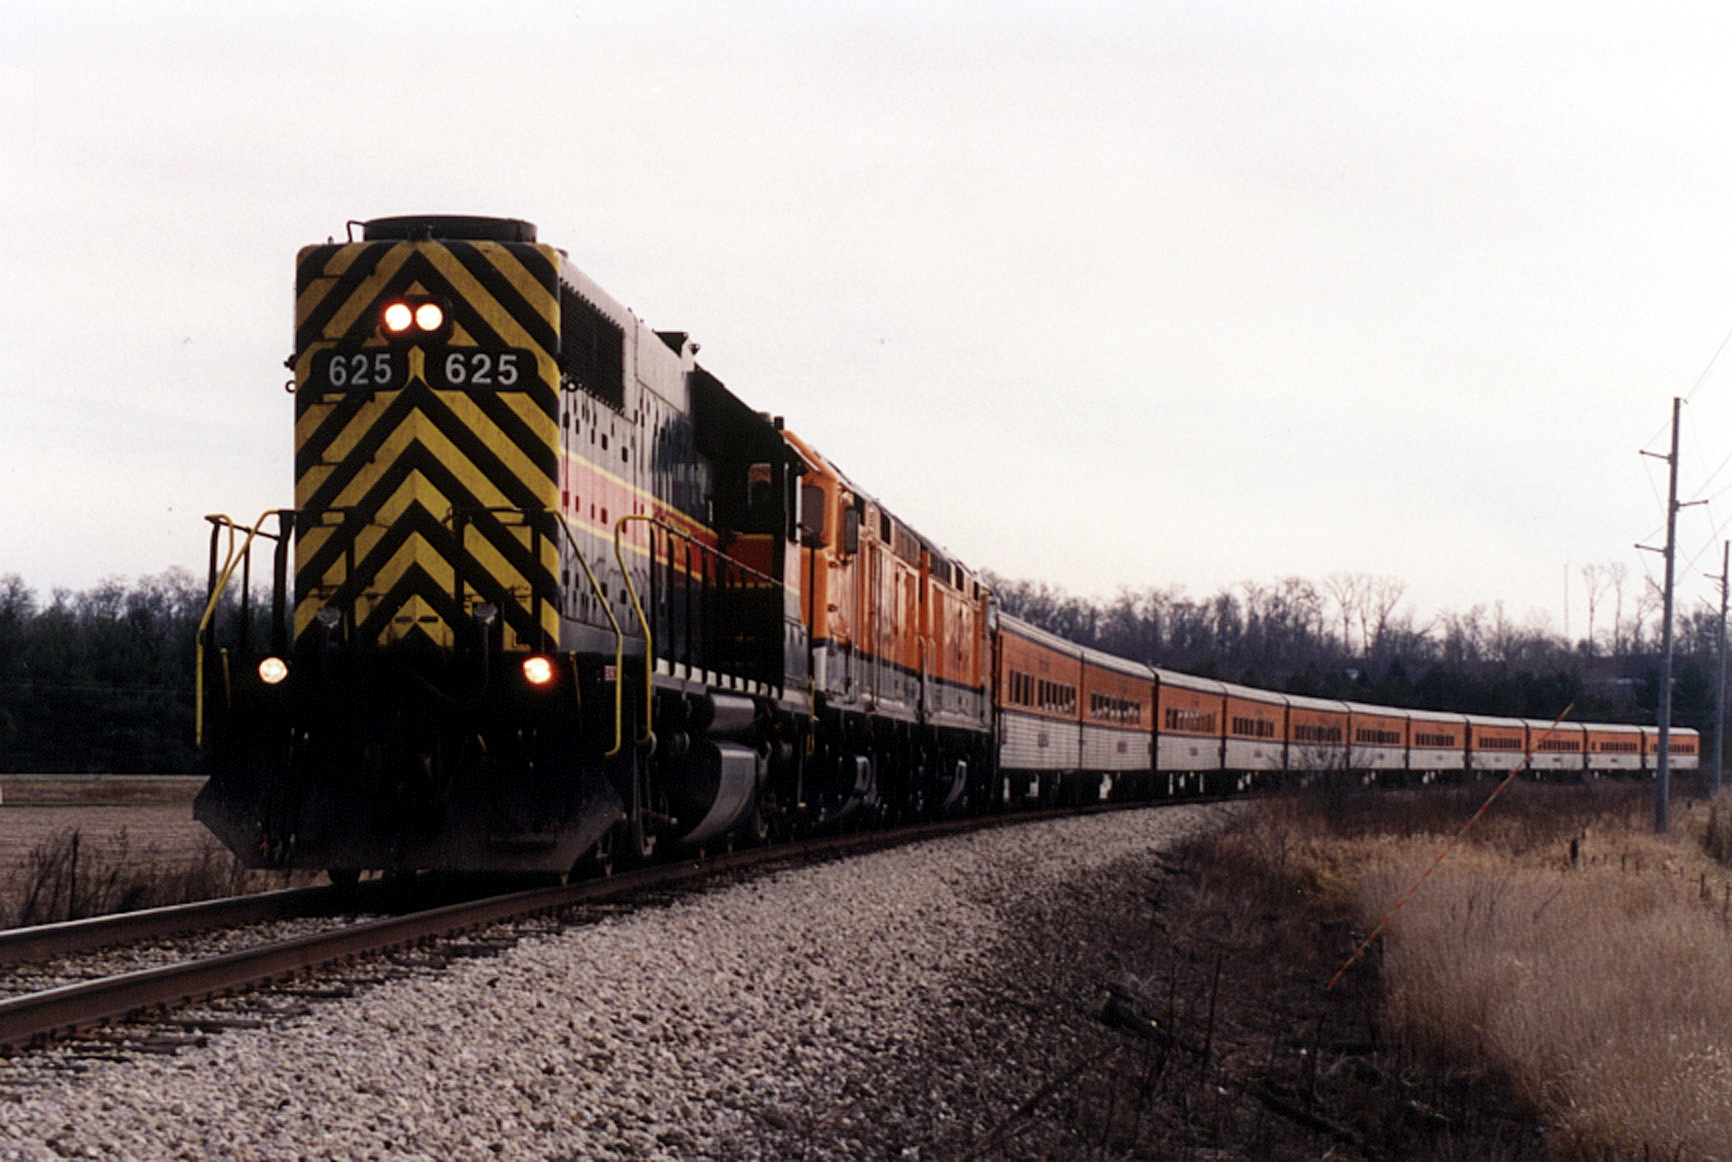 The Hawkeye Express Ski Train leaves Coralville/Iowa City for the last time in late November of 2005 with GP38 625 running long hood forward. West of Tiffin. Iowa.